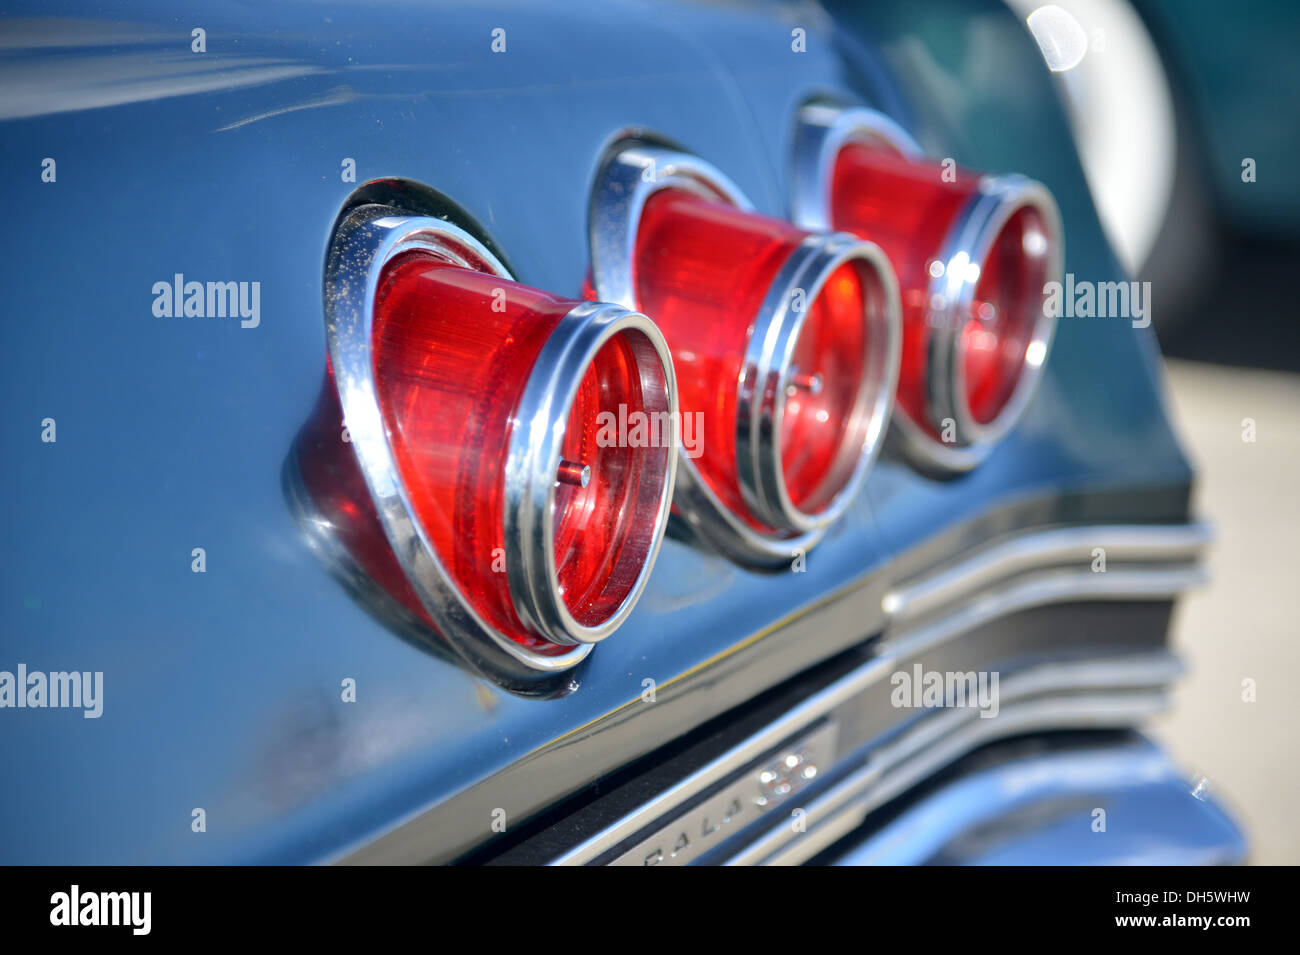 Chevrolet Impala tail lights Classic American car - Stock Image